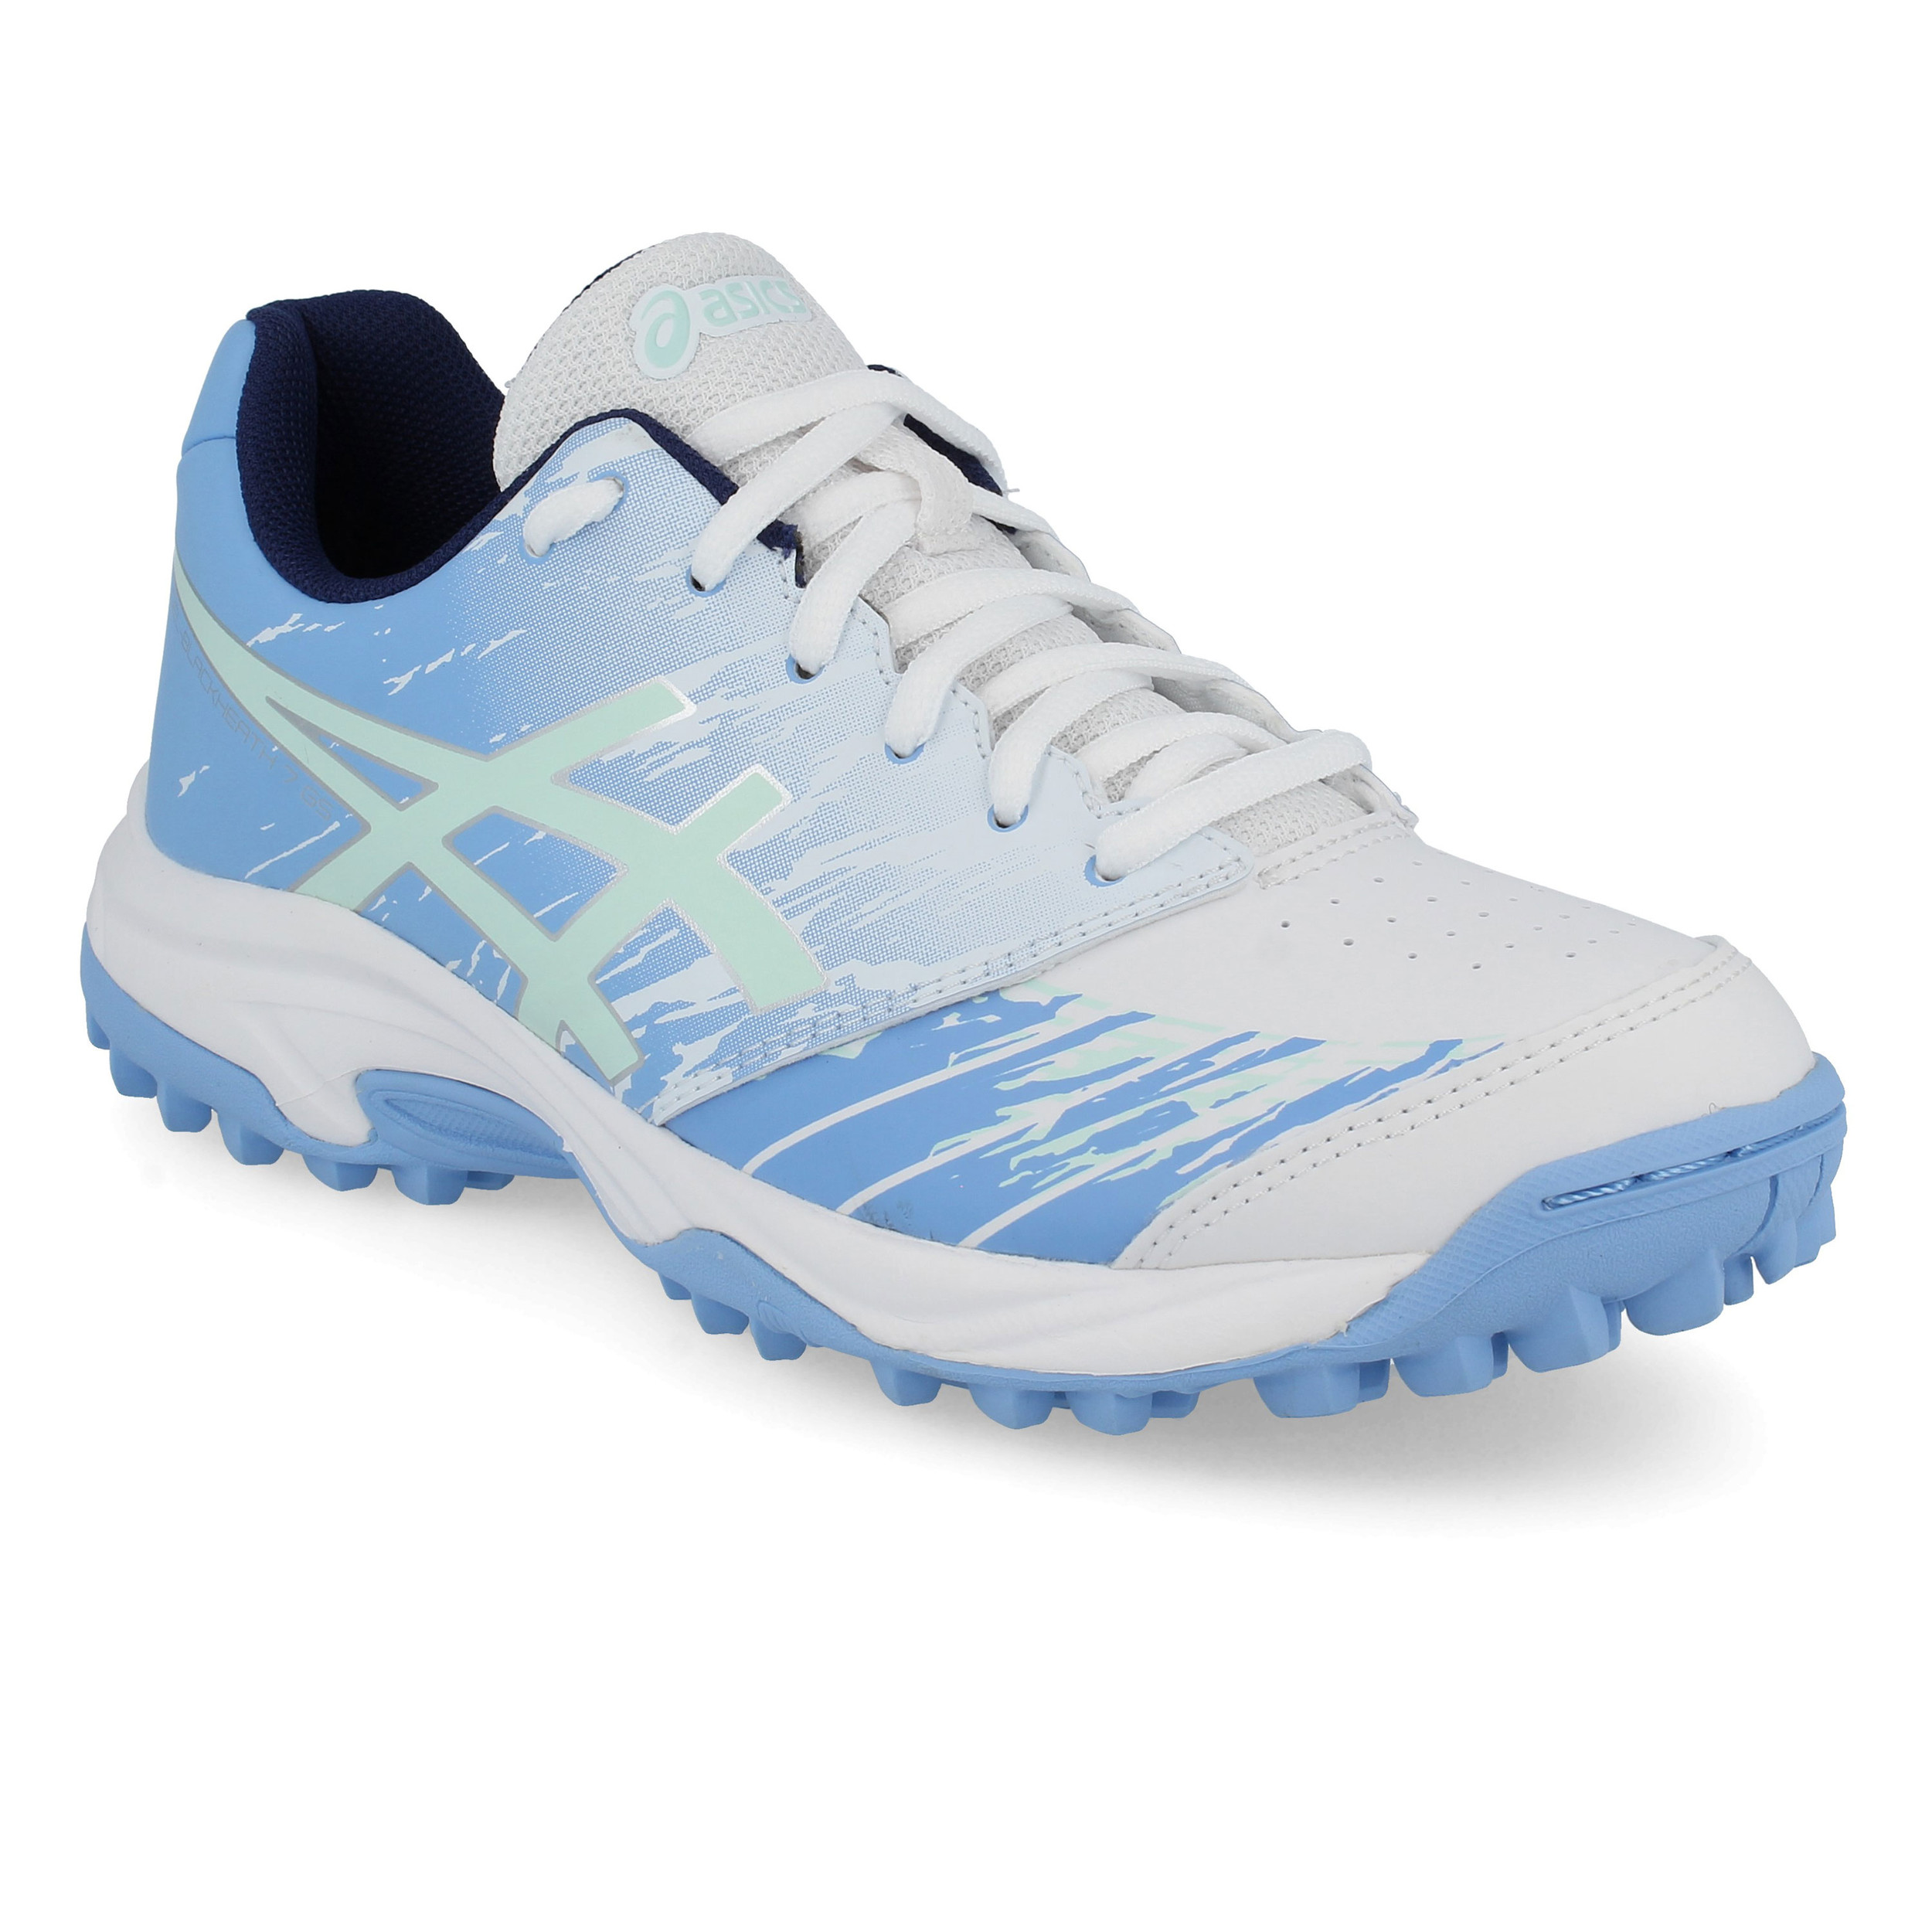 675a8cbcf Asics Gel Lethal Field 2 Gs Junior Hockey Shoes ✓ All About Hockey